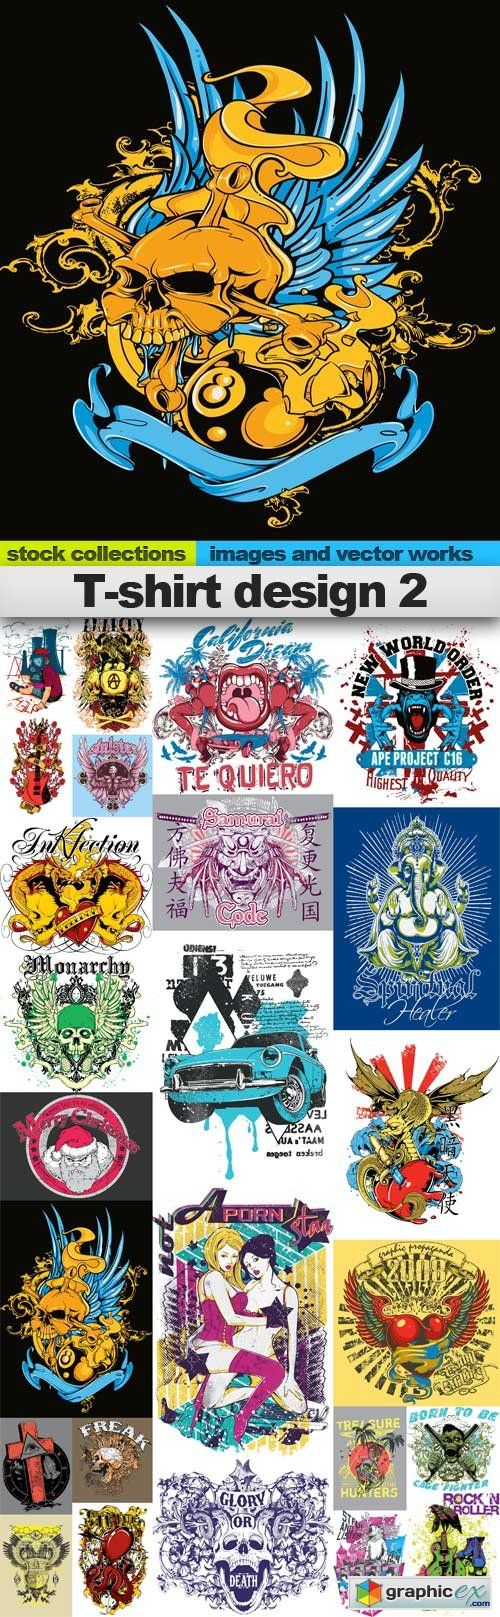 T shirt design quad cities - T Shirt Design 2 25xeps